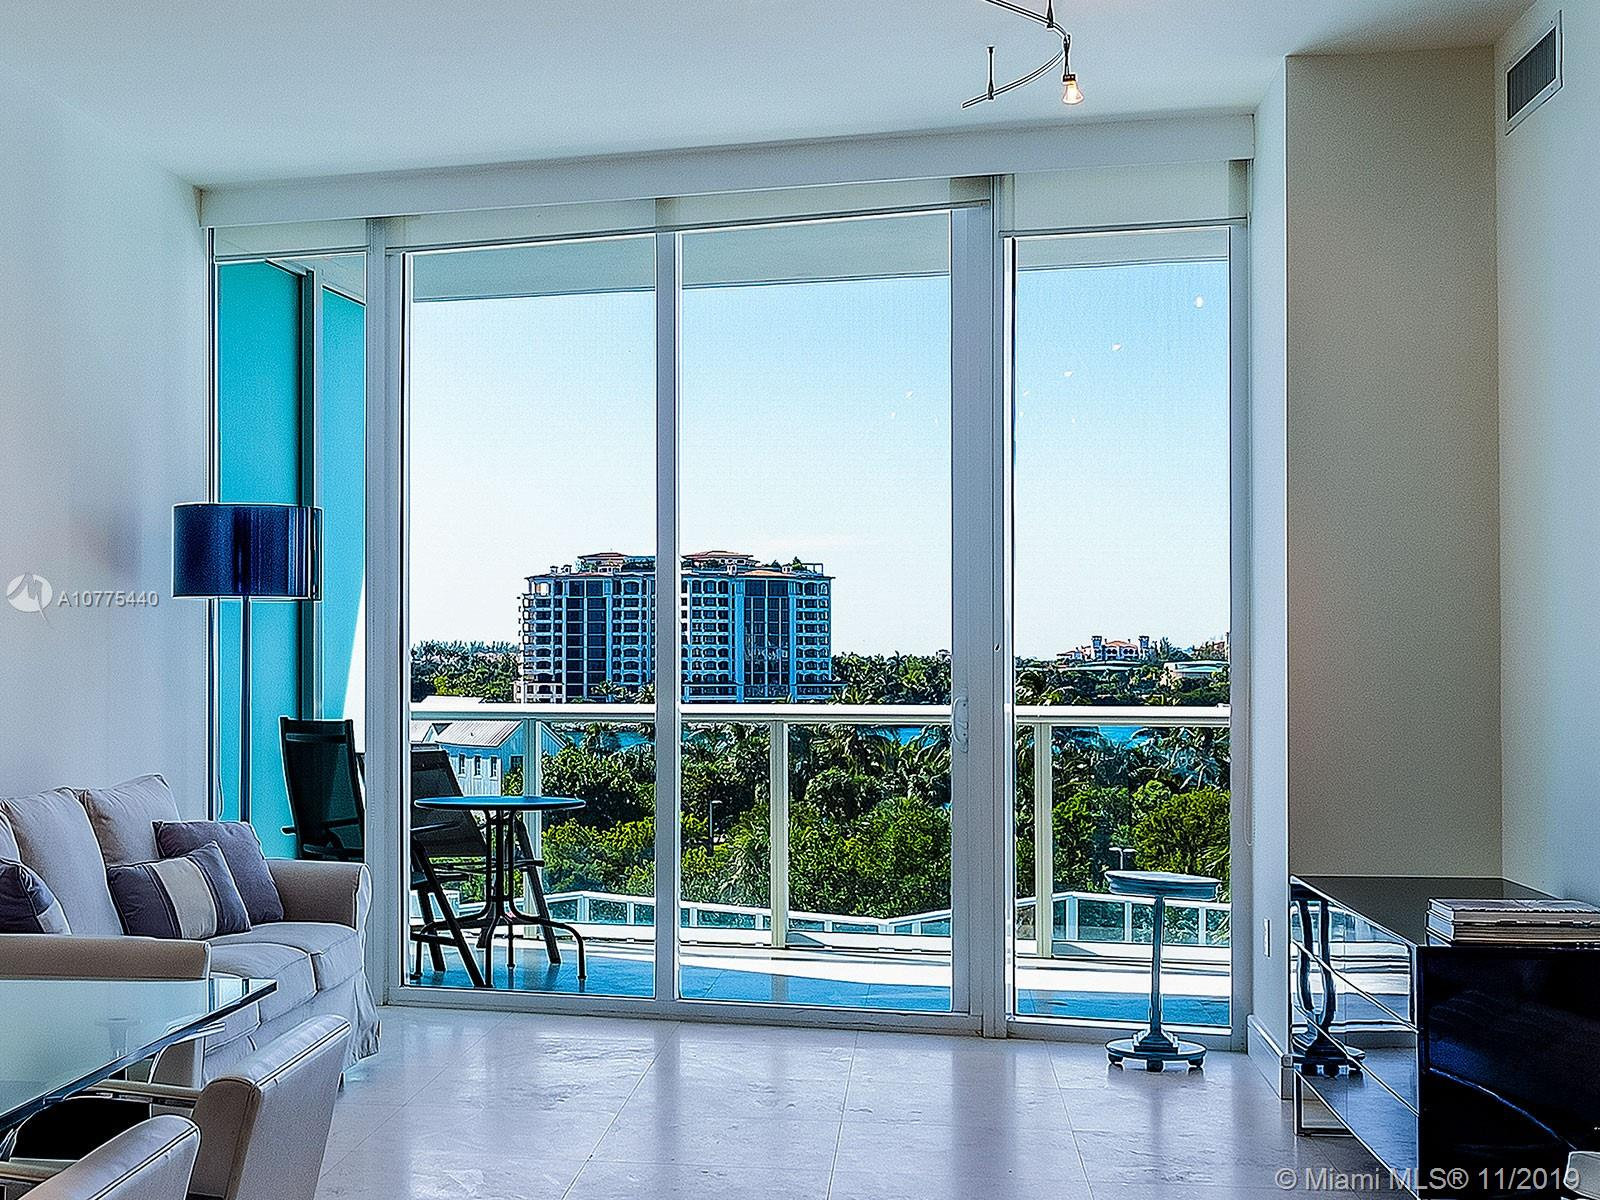 100 S Pointe Dr #502 For Sale A10775440, FL